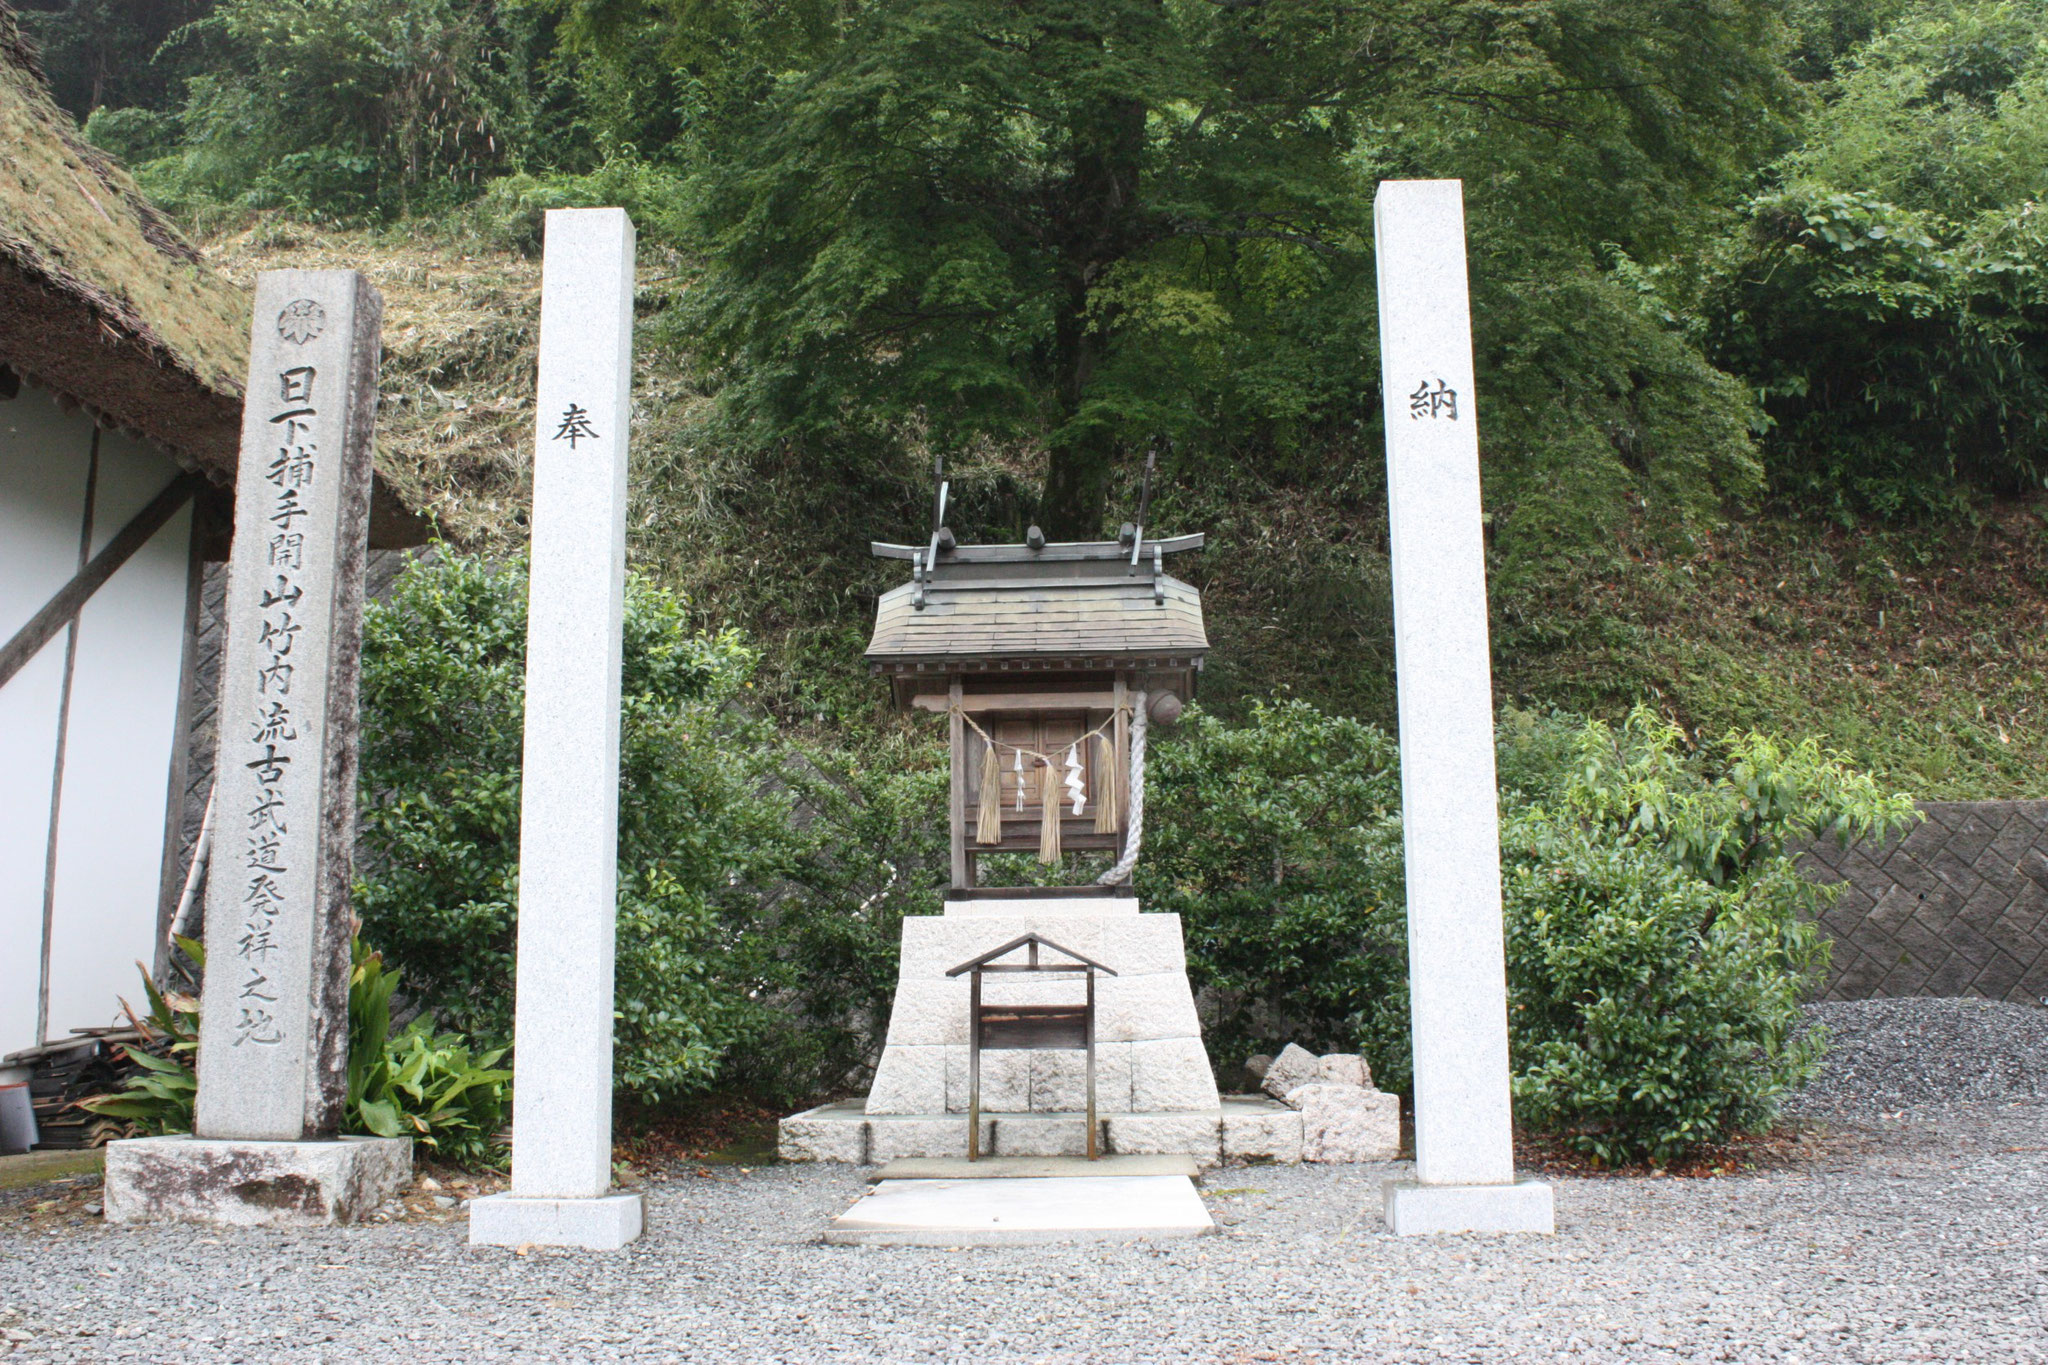 The shrine of Atago god, the divine who granted Jiu-Jitsu.